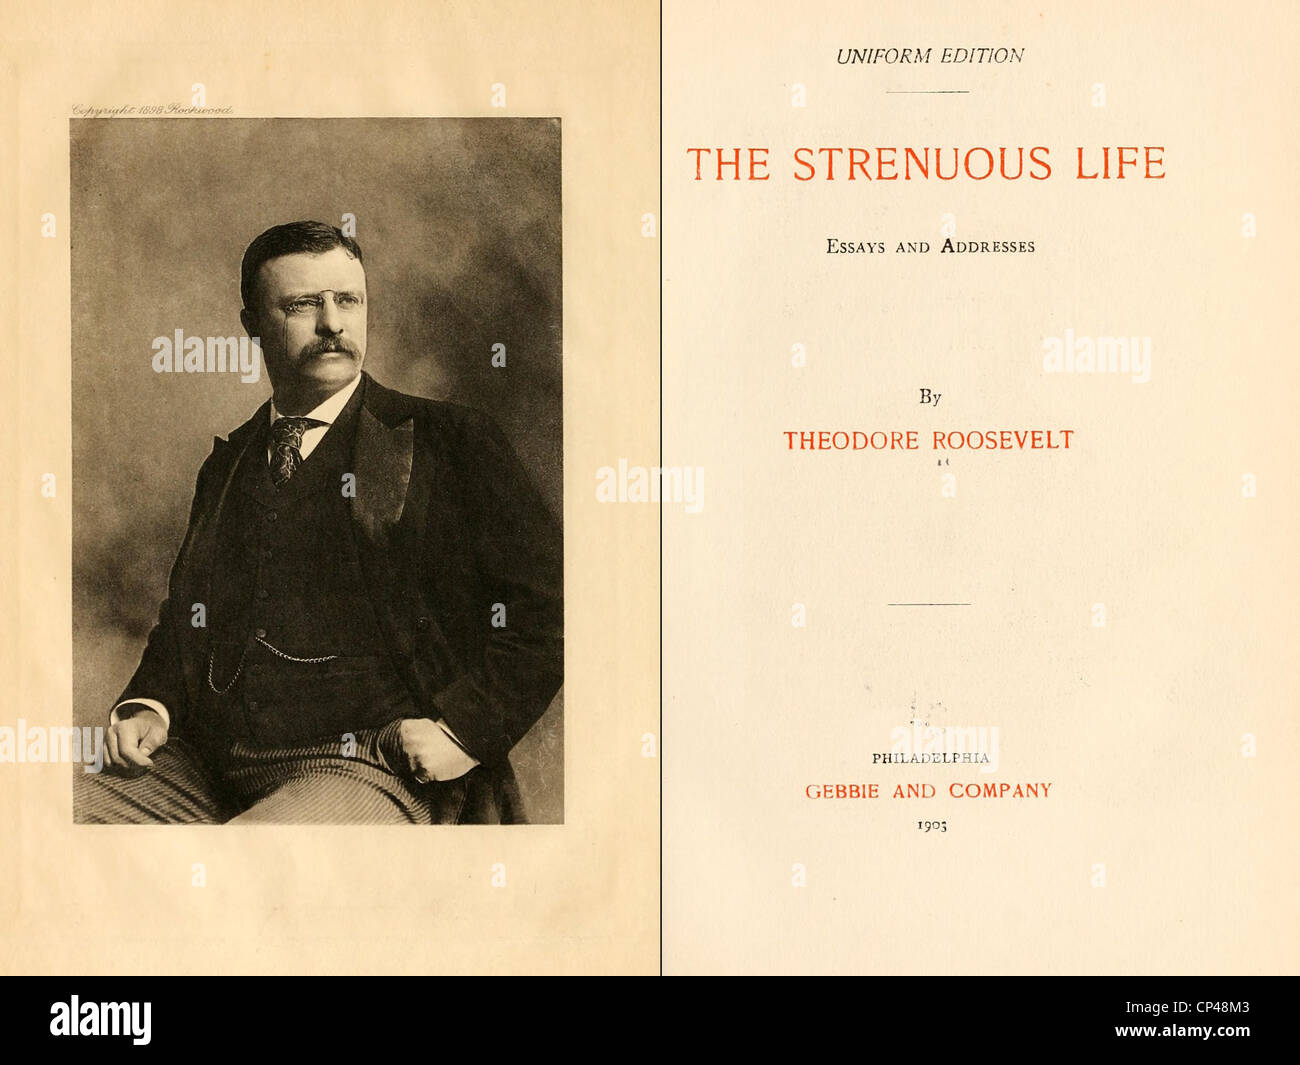 a review of the life and administration of woodrow wilson and theodore roosevelt Book review: 'theodore and woodrow'  theodore roosevelt and woodrow wilson  prominently backing the creation of the food and drug administration and federal reserve the heavy hand of.